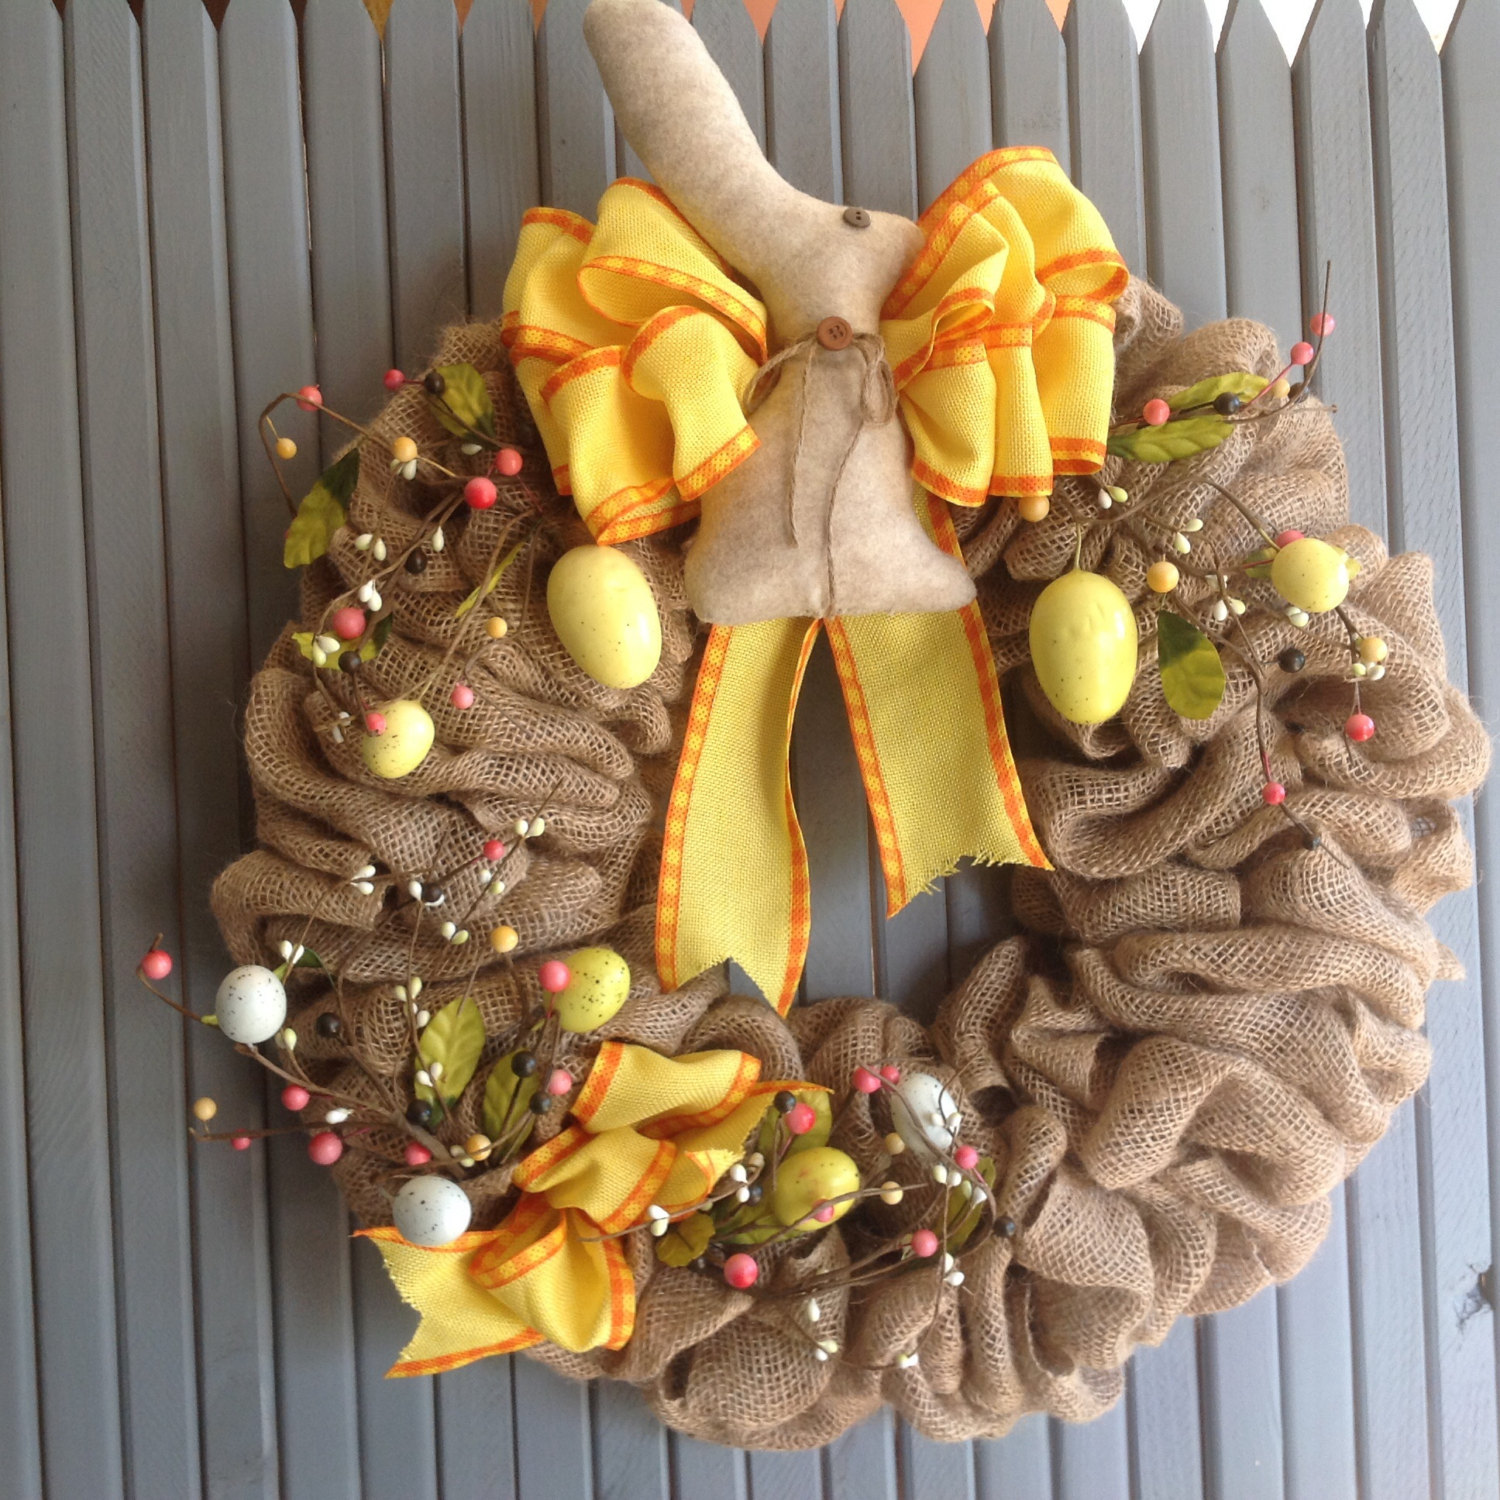 16 Jolly Handmade Easter Wreath Designs For The Upcoming